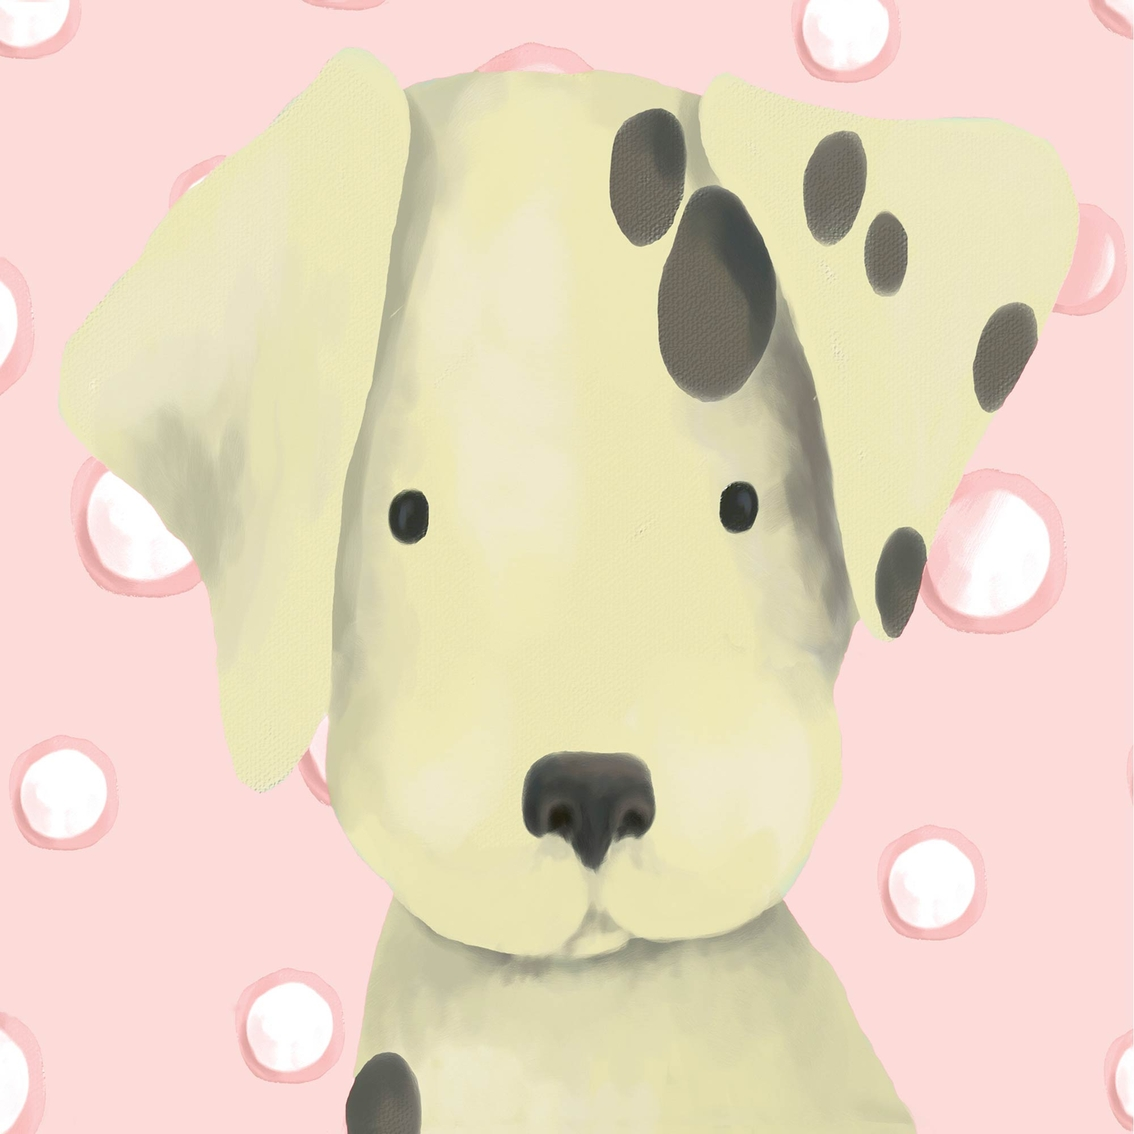 Greenbox Art 10 X 10 Pink Radley The Dalmatian Canvas Wall Art ...